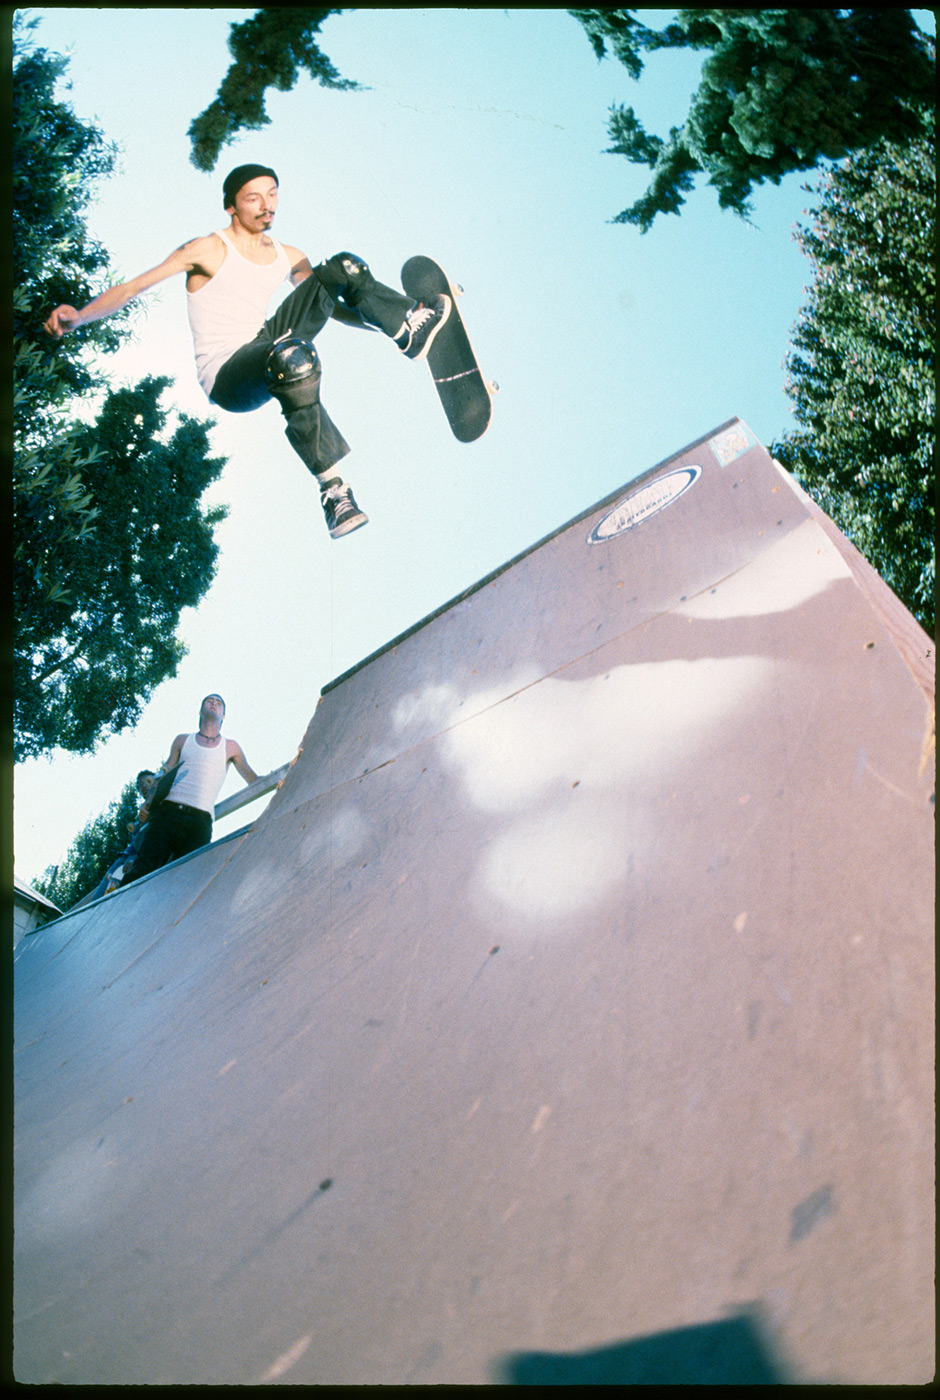 Tommy Guerrero continuing to inspire years later. Dogpiss Air in 1997. Photo: Tobin Yelland